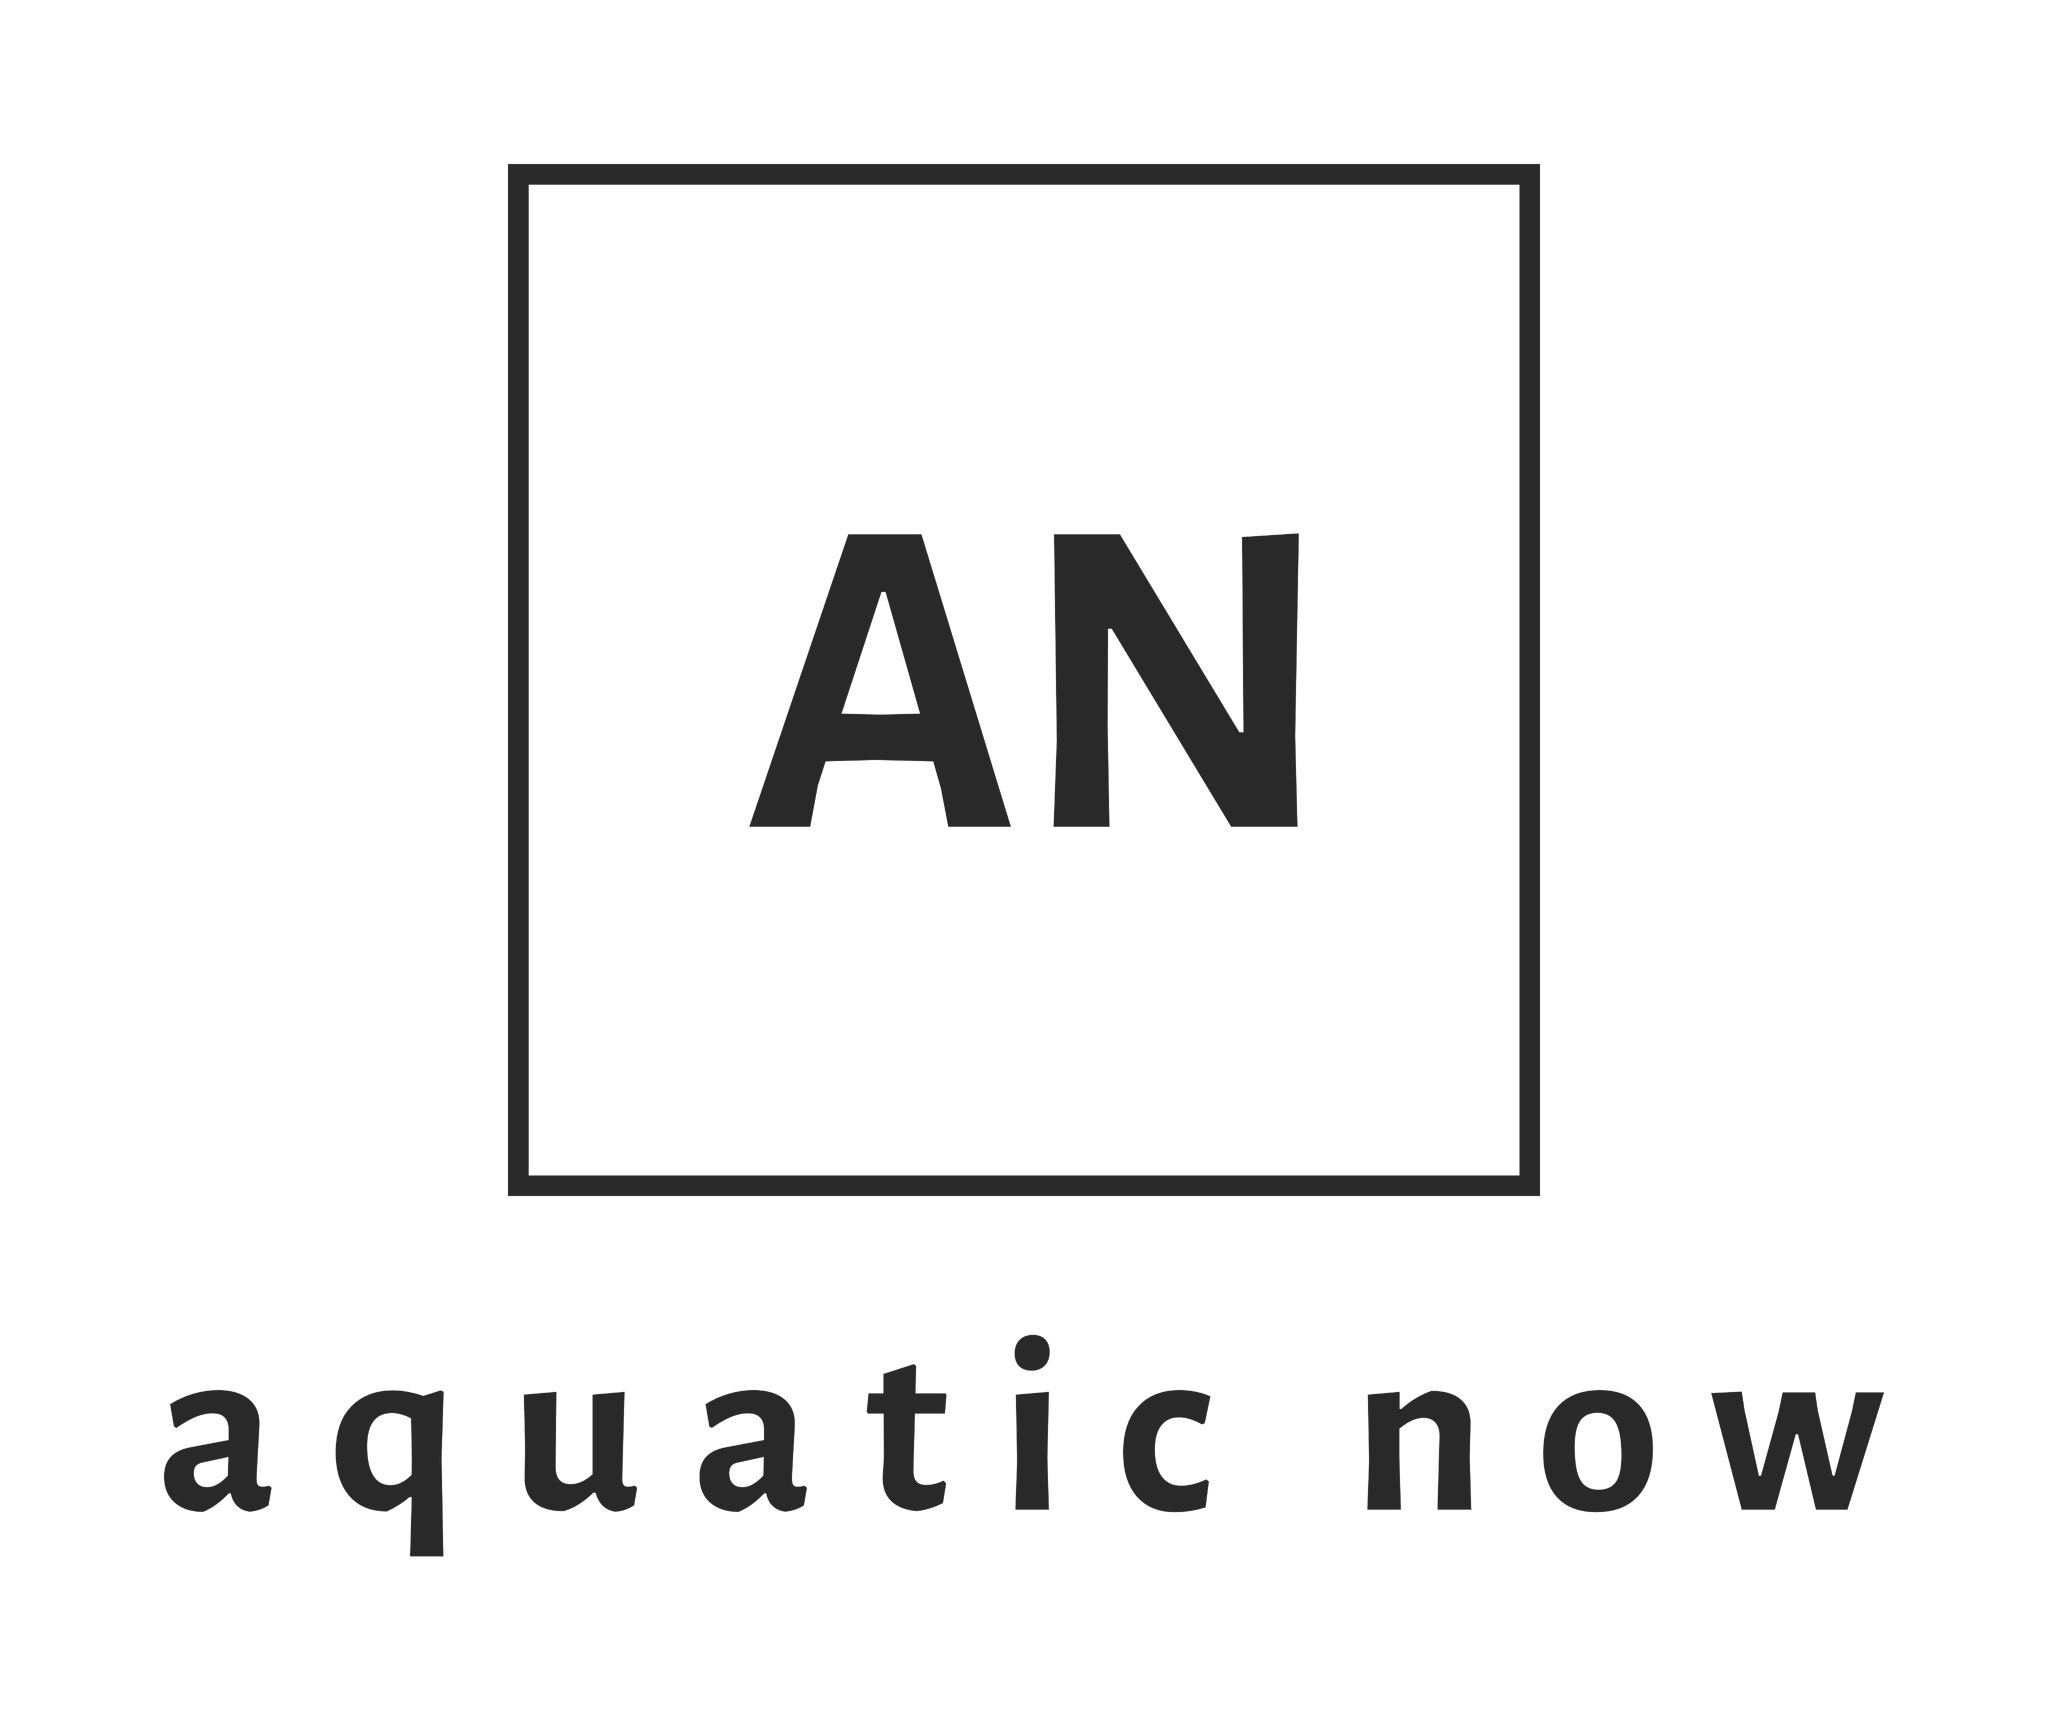 Aquatic Now